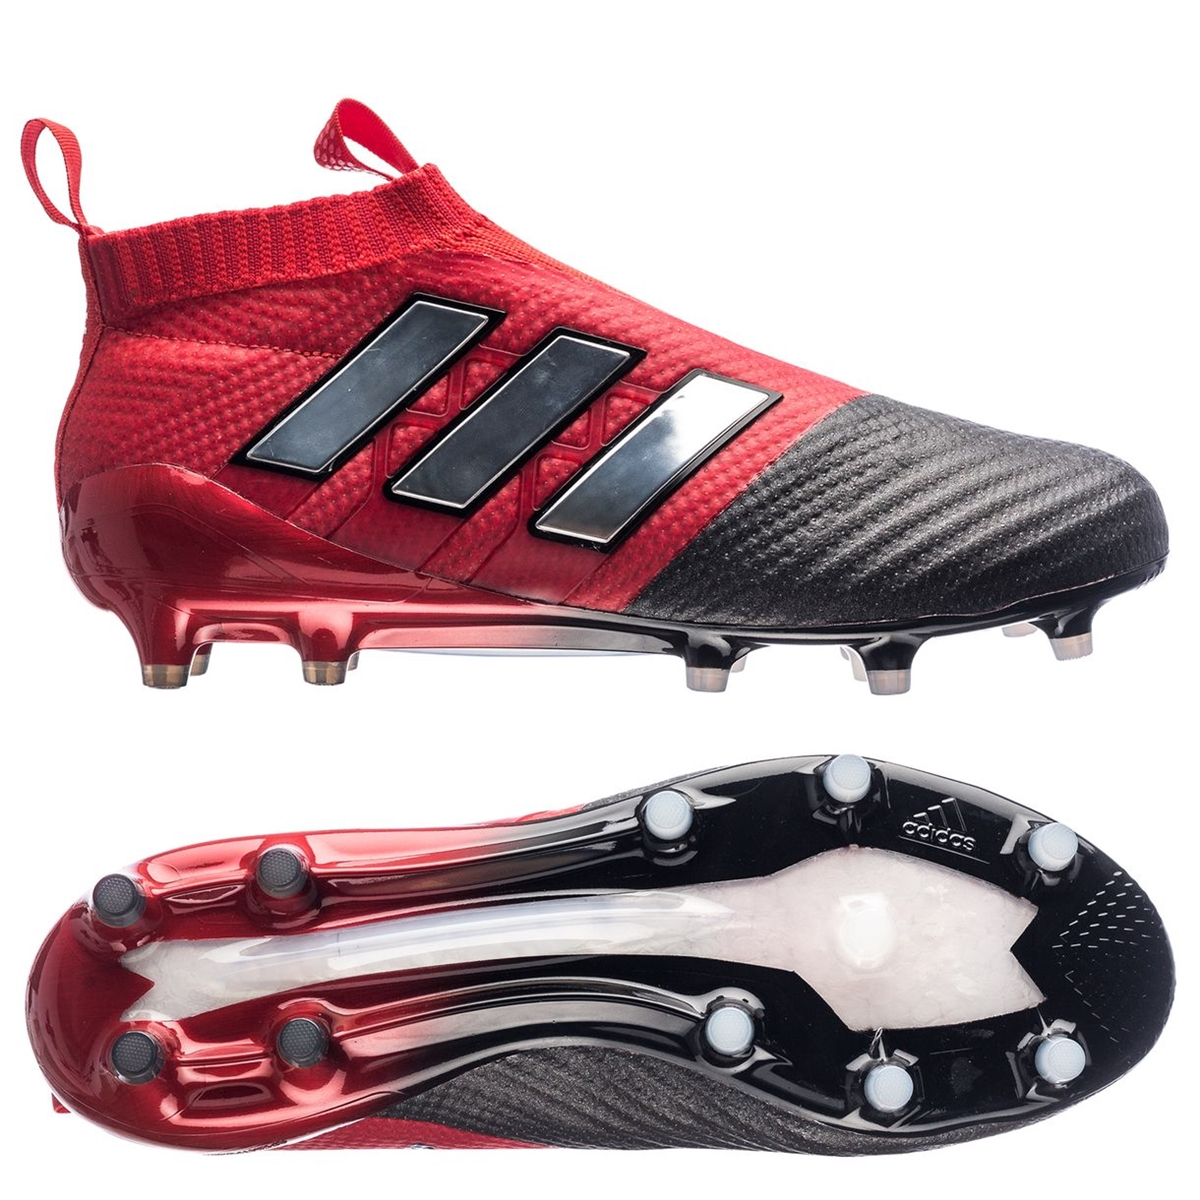 Adidas ACE 17+ PURECONTROL FG Soccer Cleats (Red White Black ... ac207c1afa80